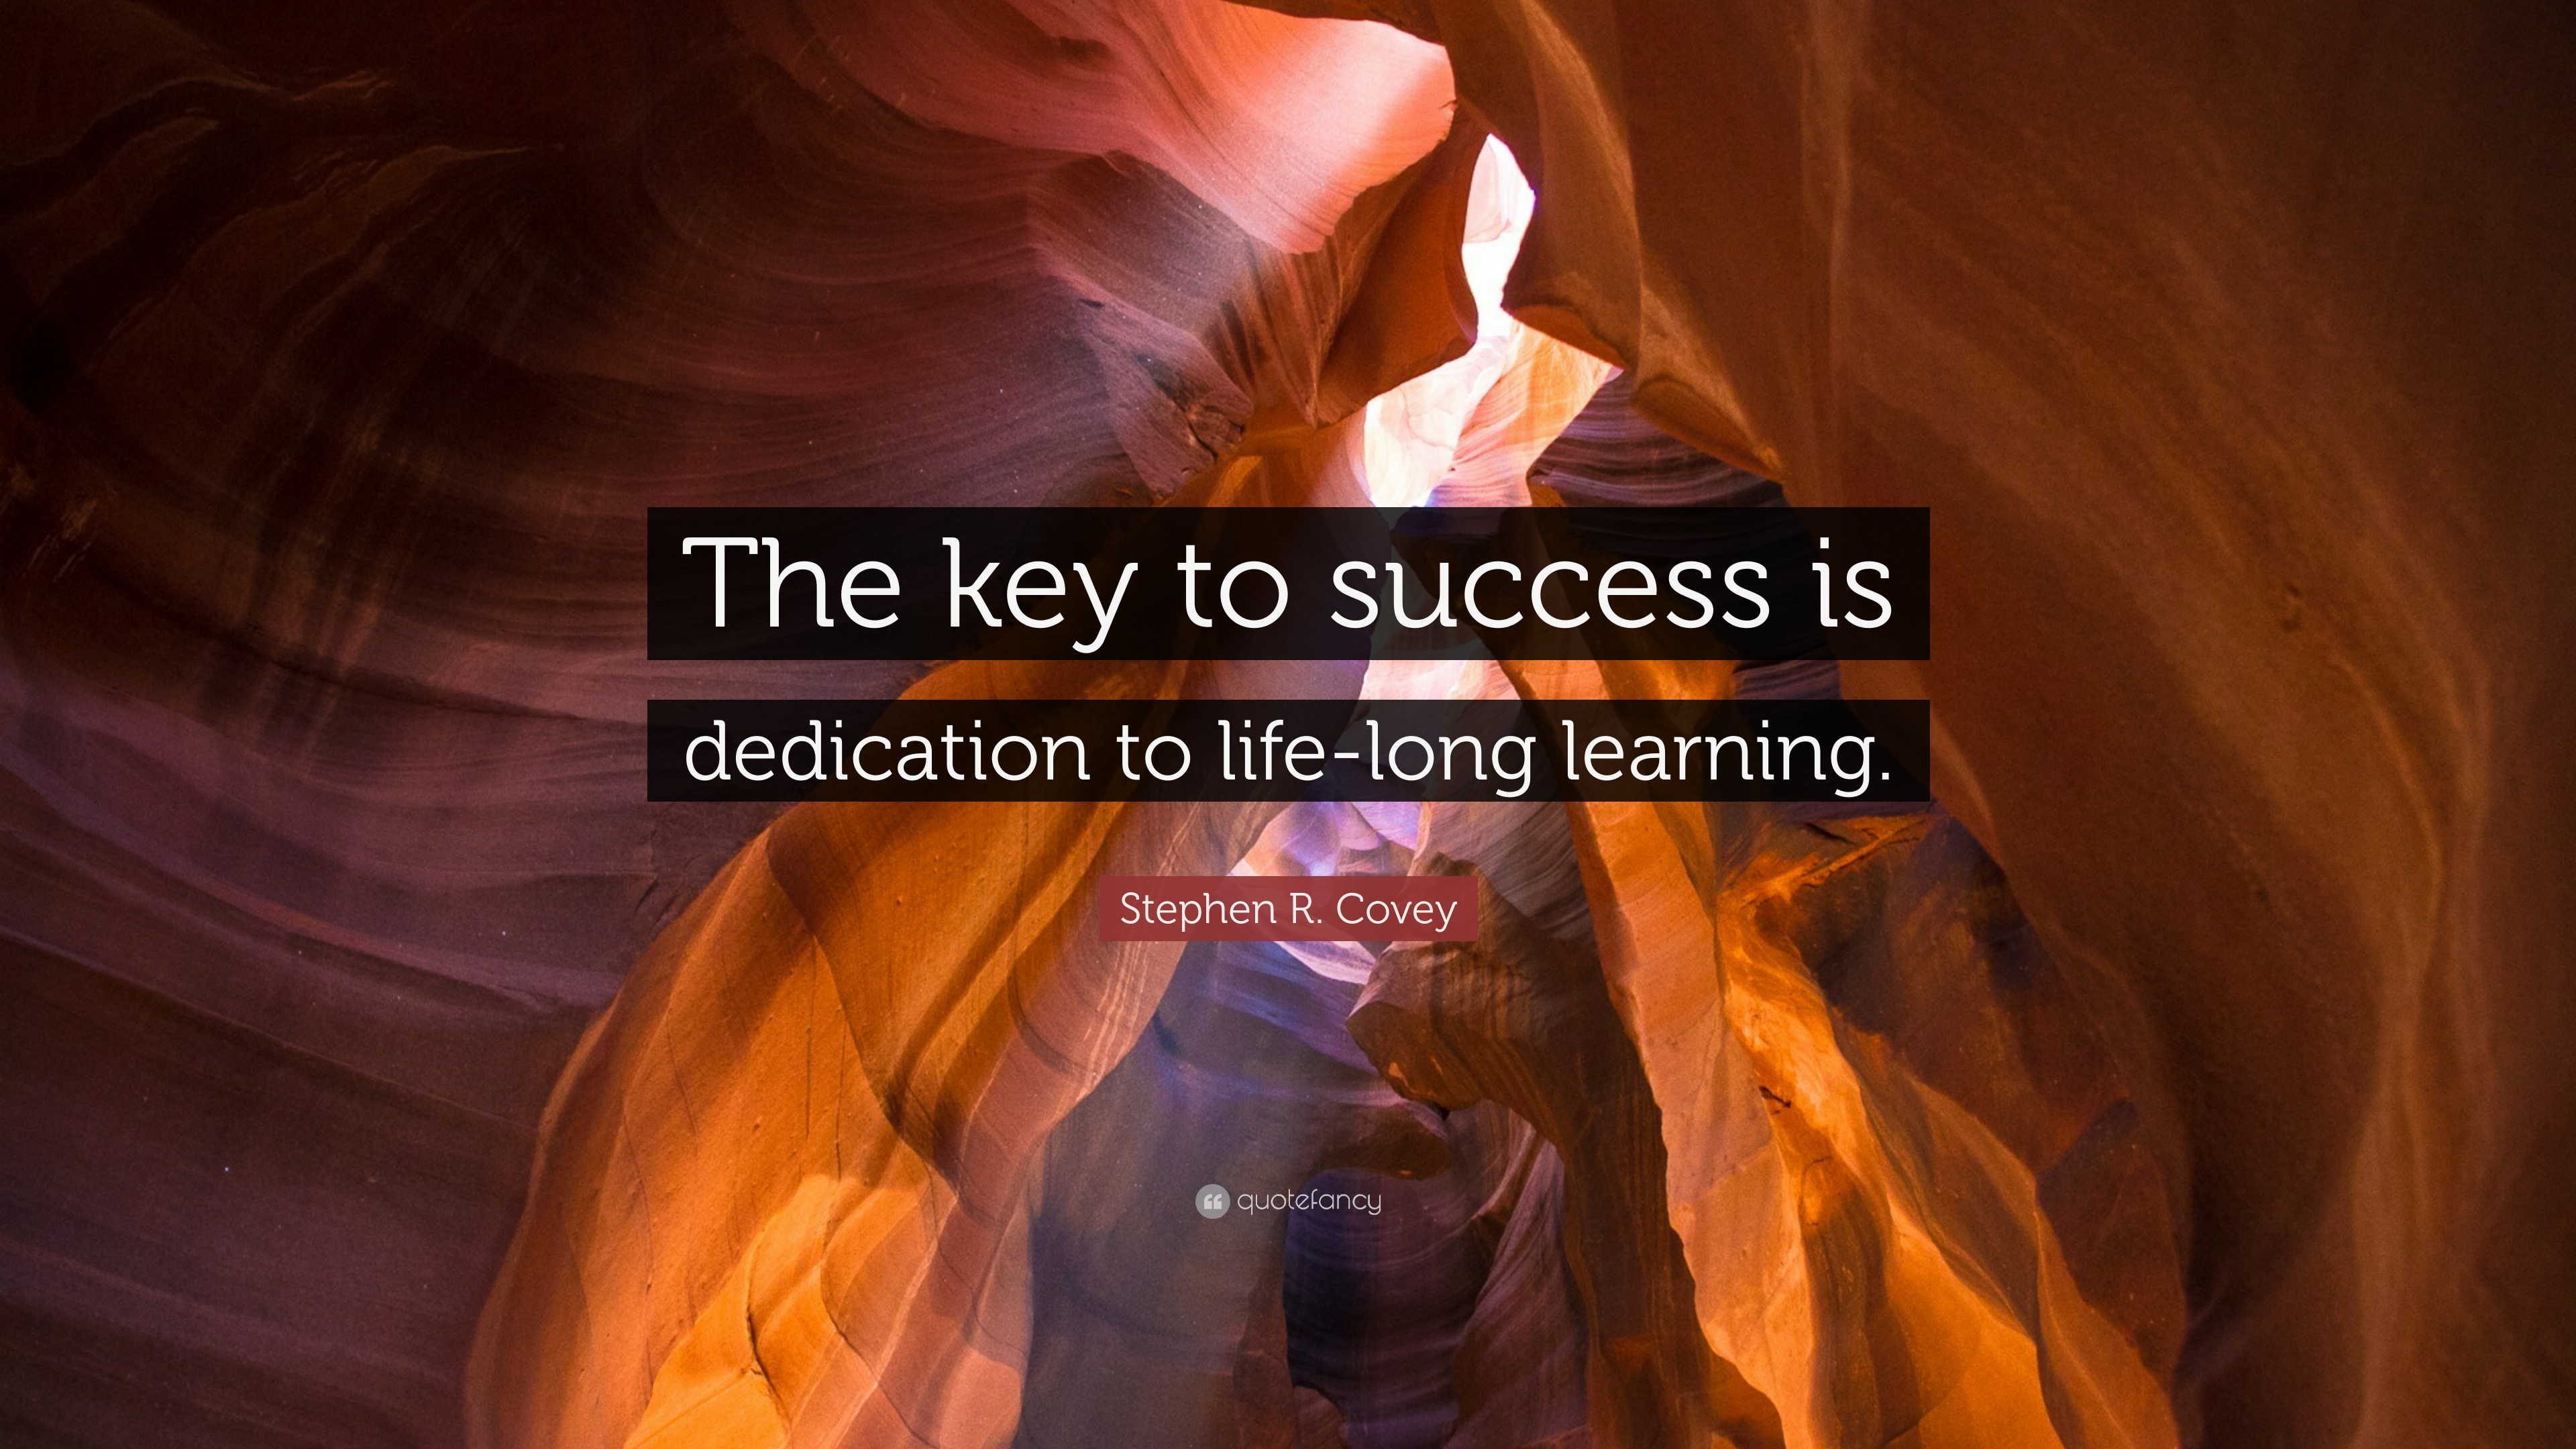 Stephen R Covey Quote The Key To Success Is Dedication